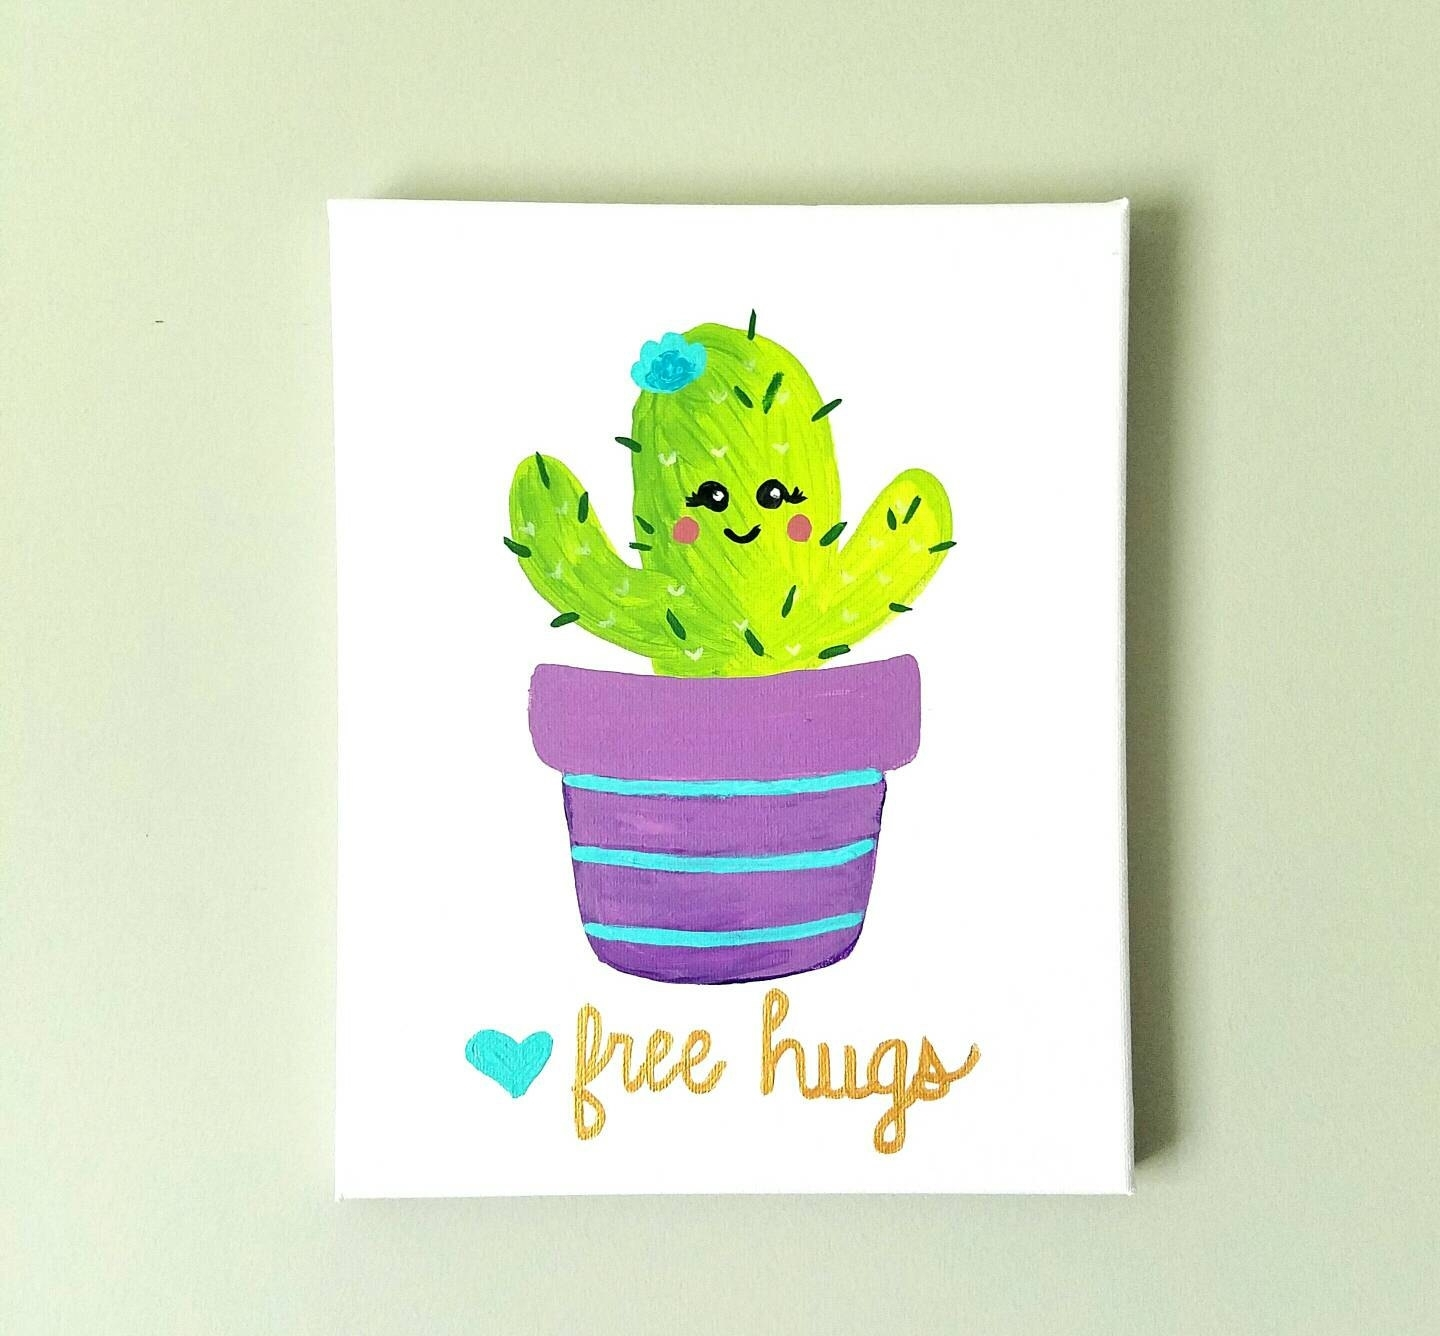 Cactus Wall Art Baby Girl Decor Girls Nursery Decor Baby | Etsy For Most Recent Cactus Wall Art (Gallery 2 of 20)